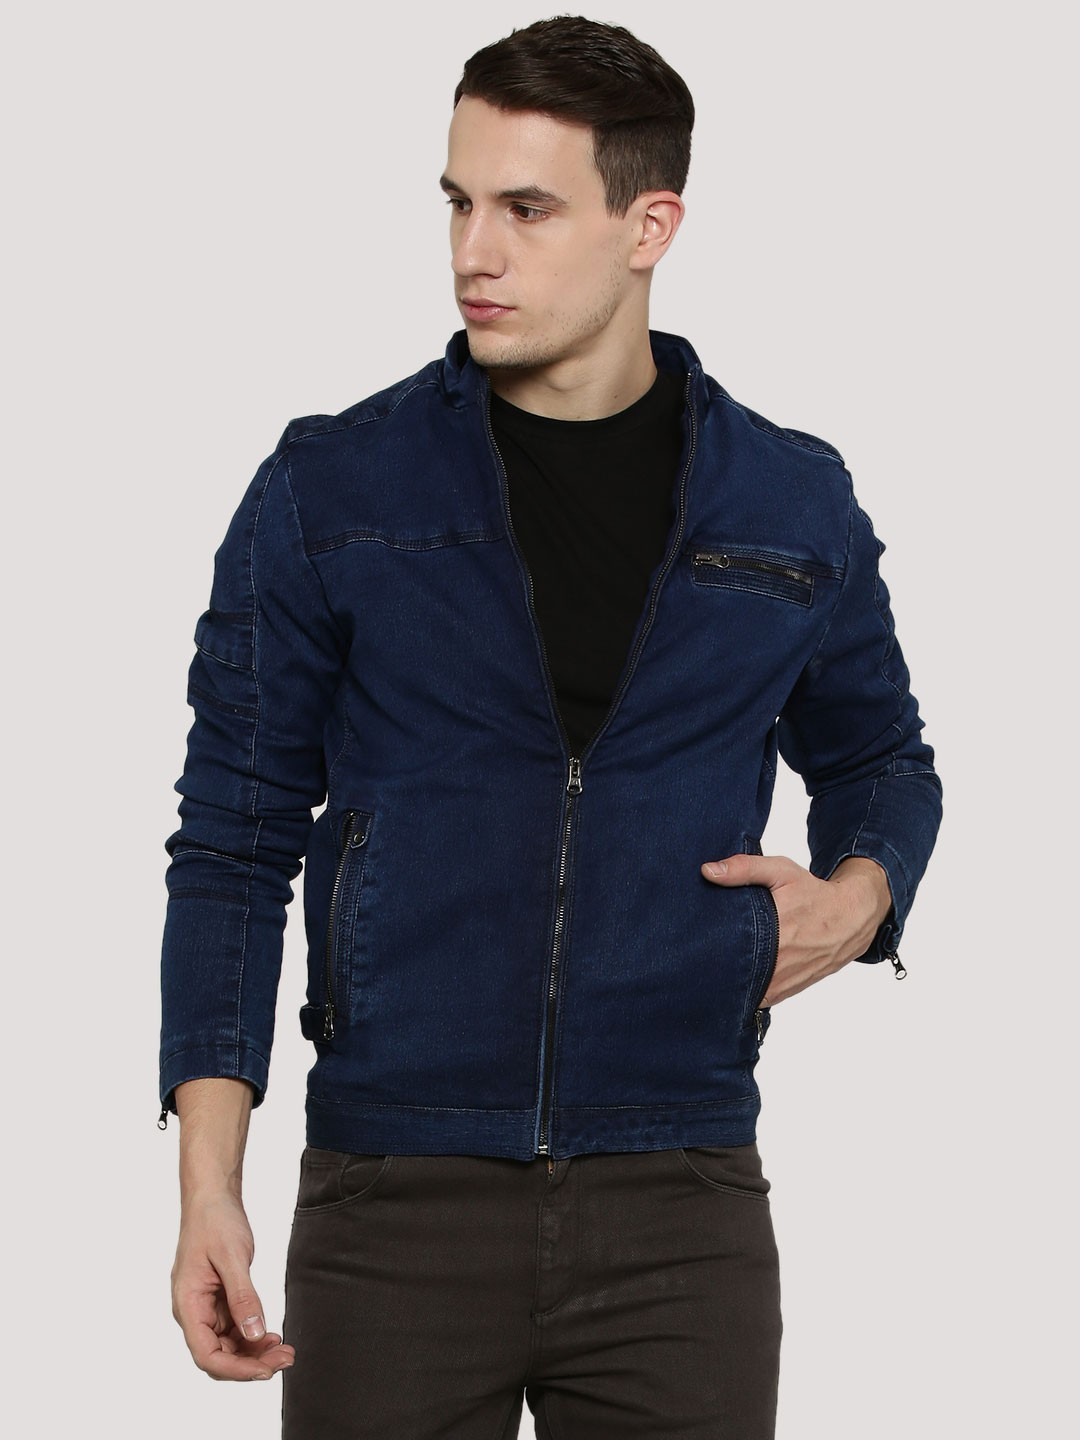 Buy FORT COLLINS Denim Jacket With Back Cut & Sew For Men - Men's ...